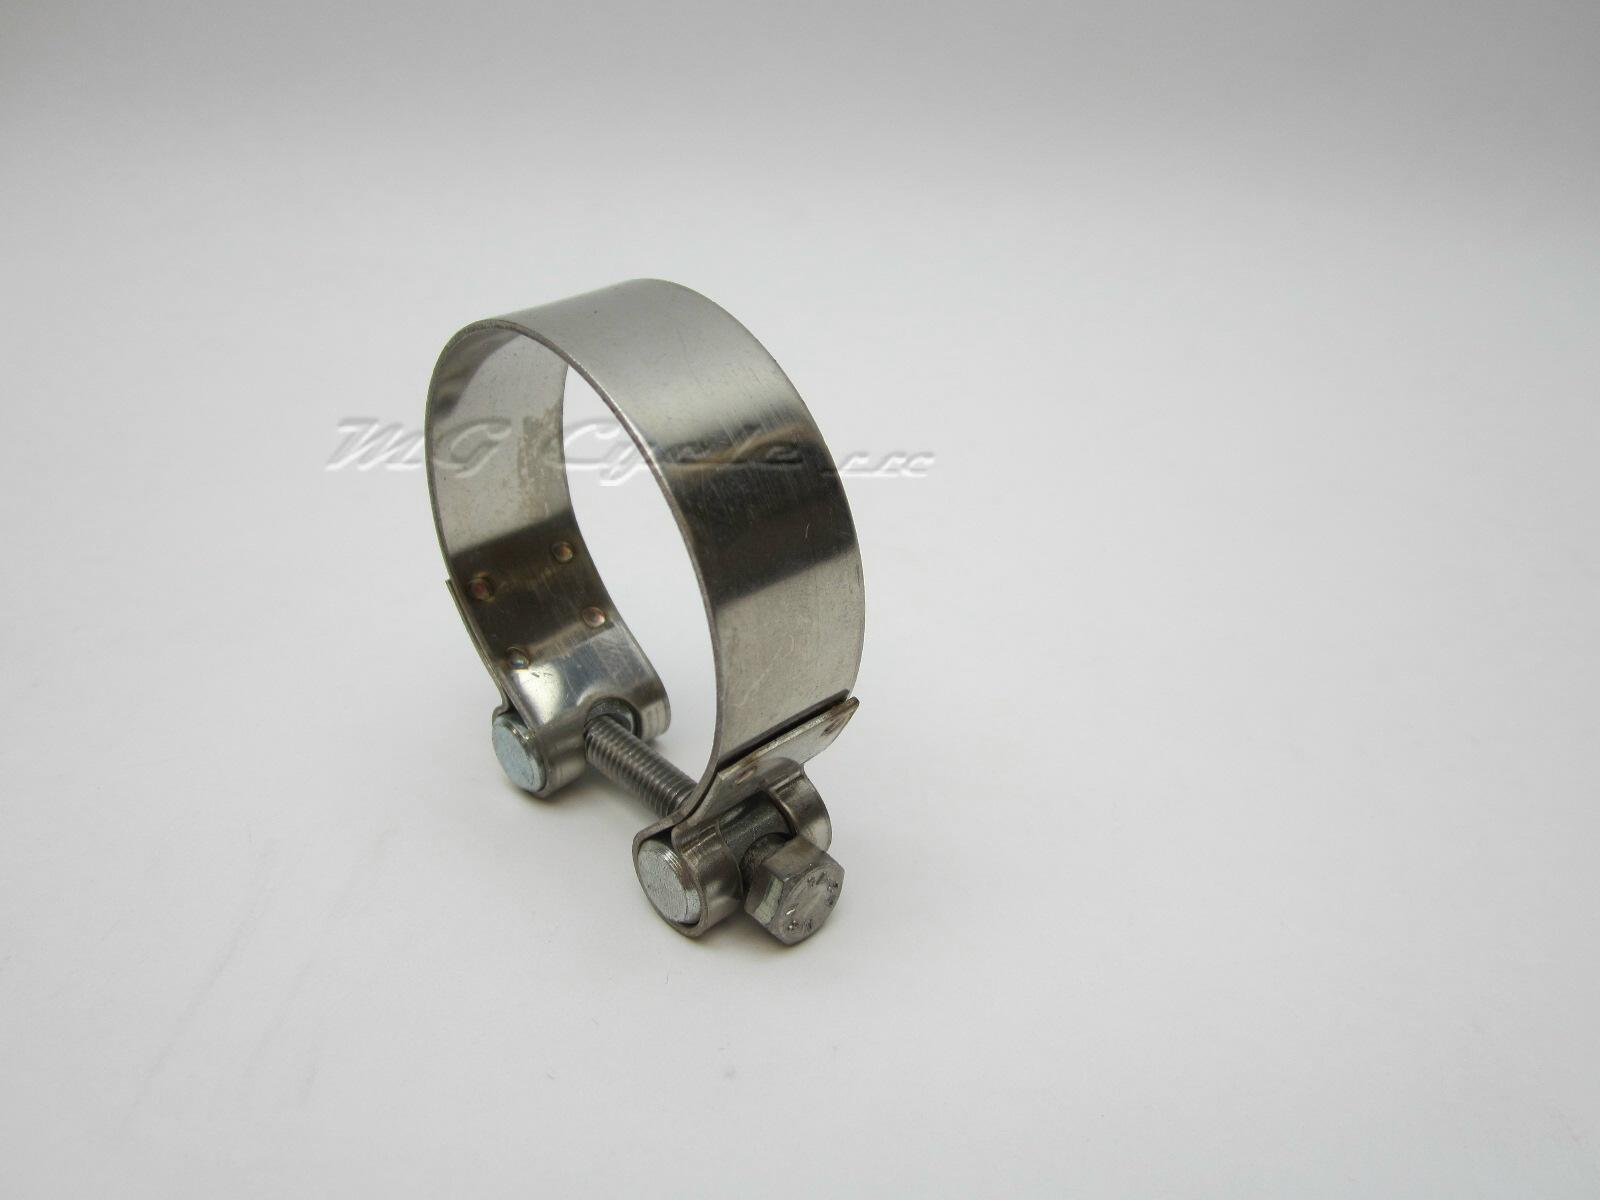 muffler clamp for V11 Sport and V11 LeMans, stainless steel